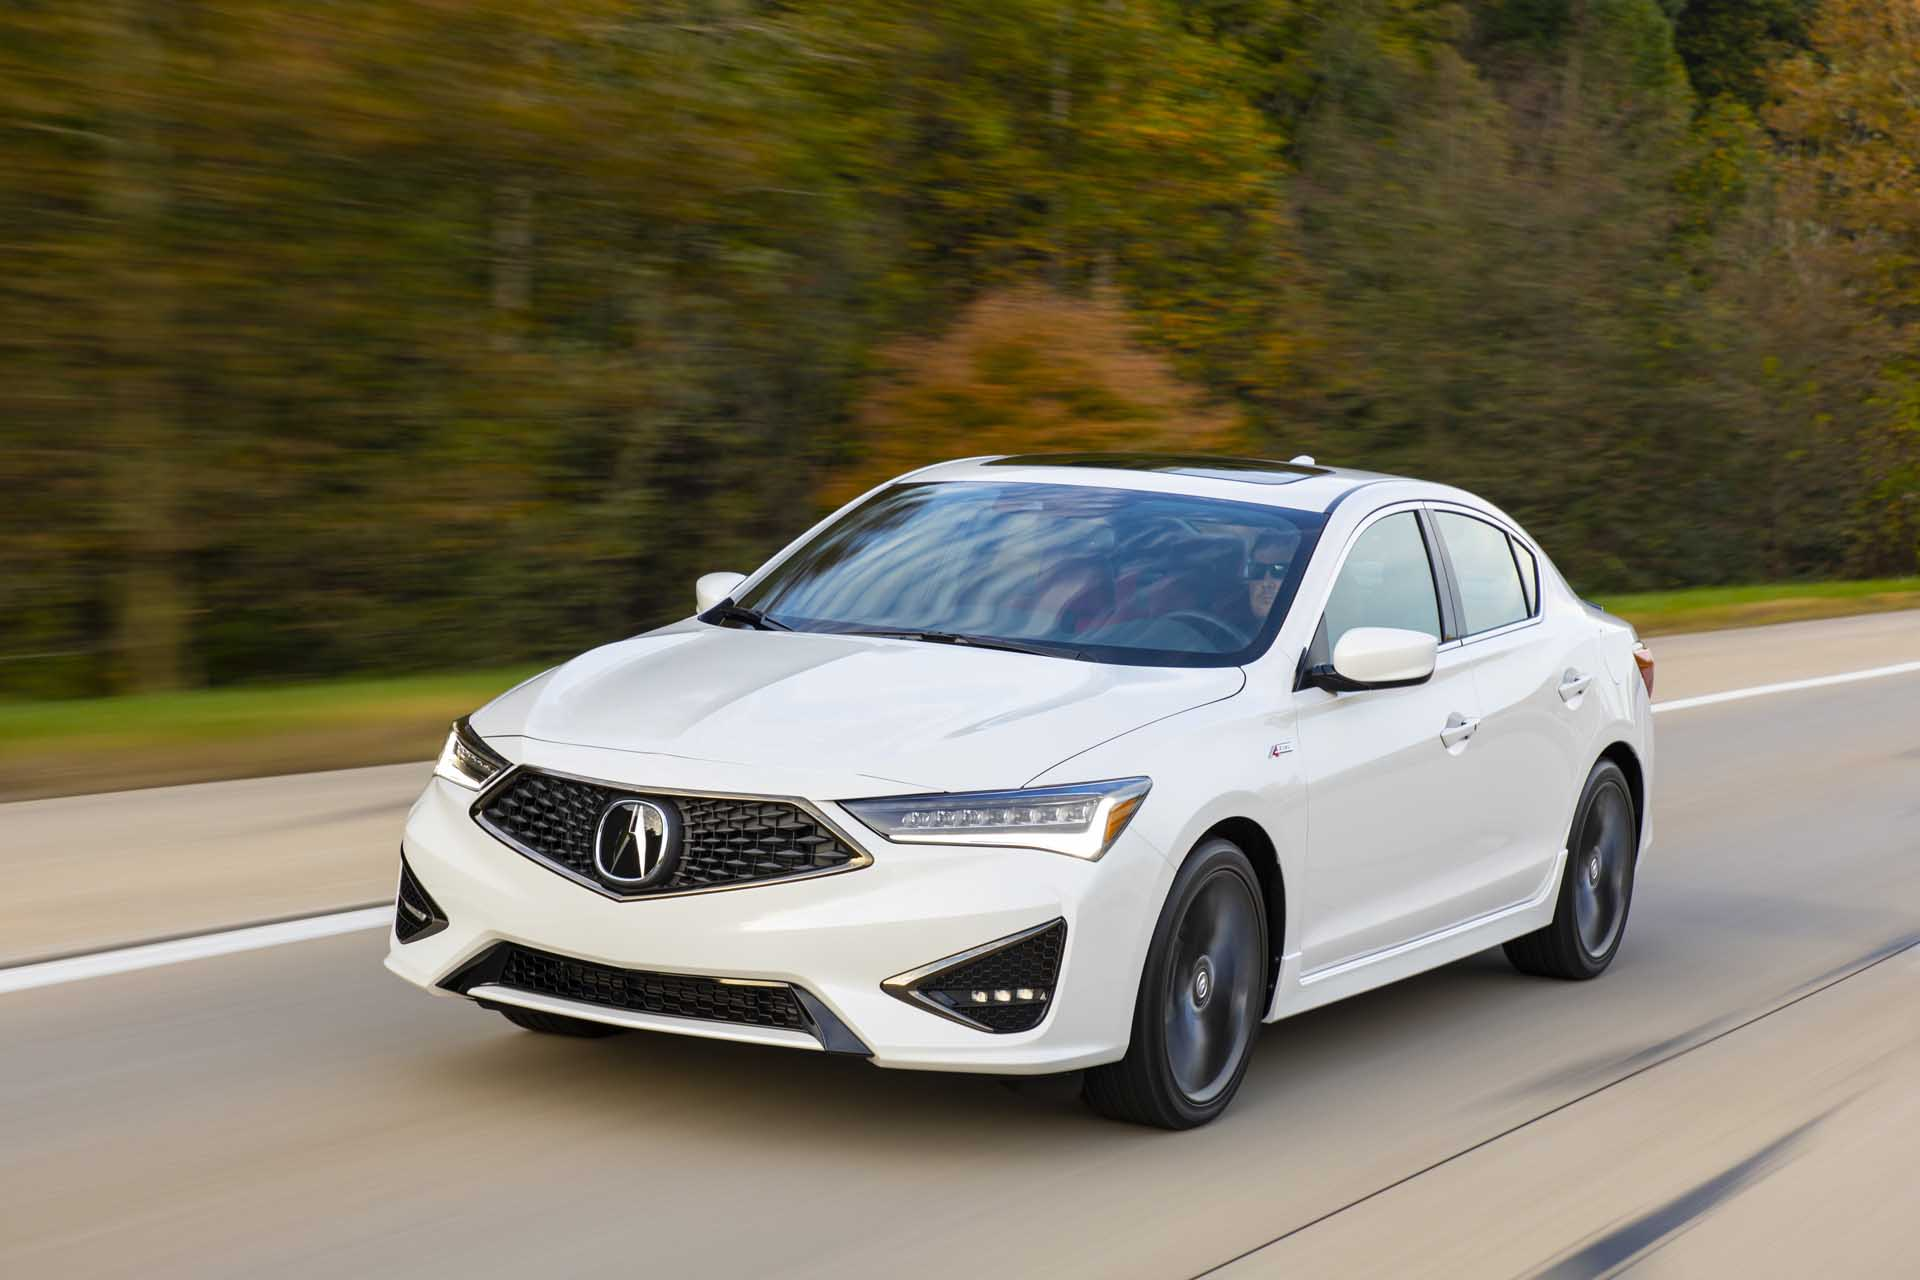 2020 Acura ILX Review, Ratings, Specs, Prices, and Photos ...